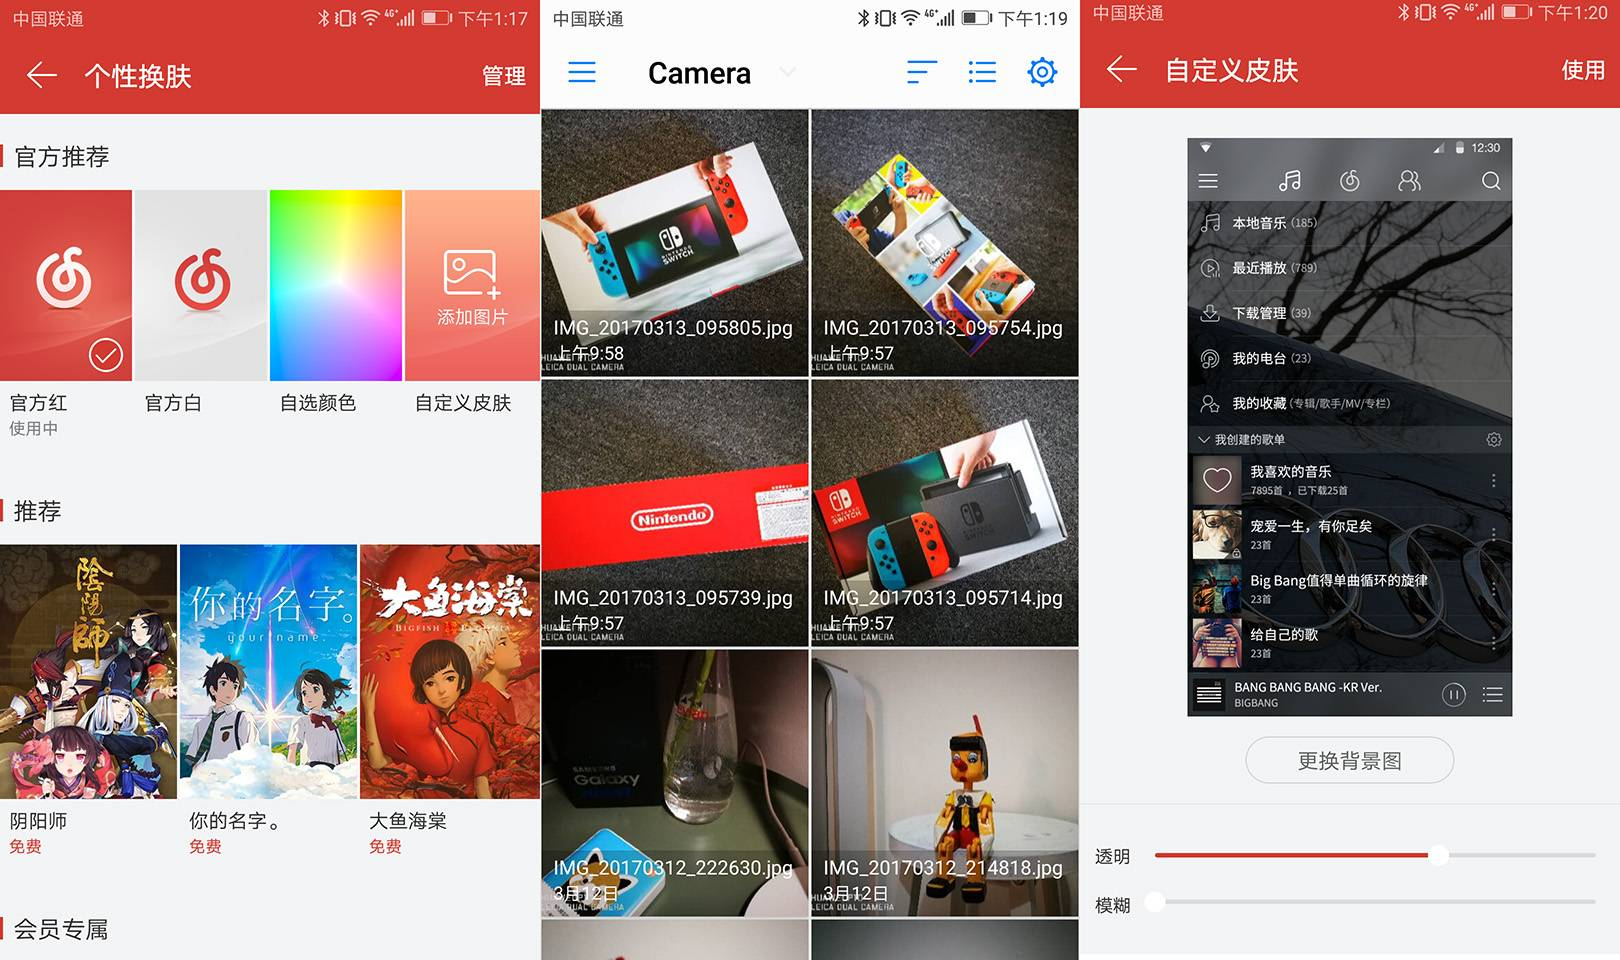 Netease cloud music Theme change